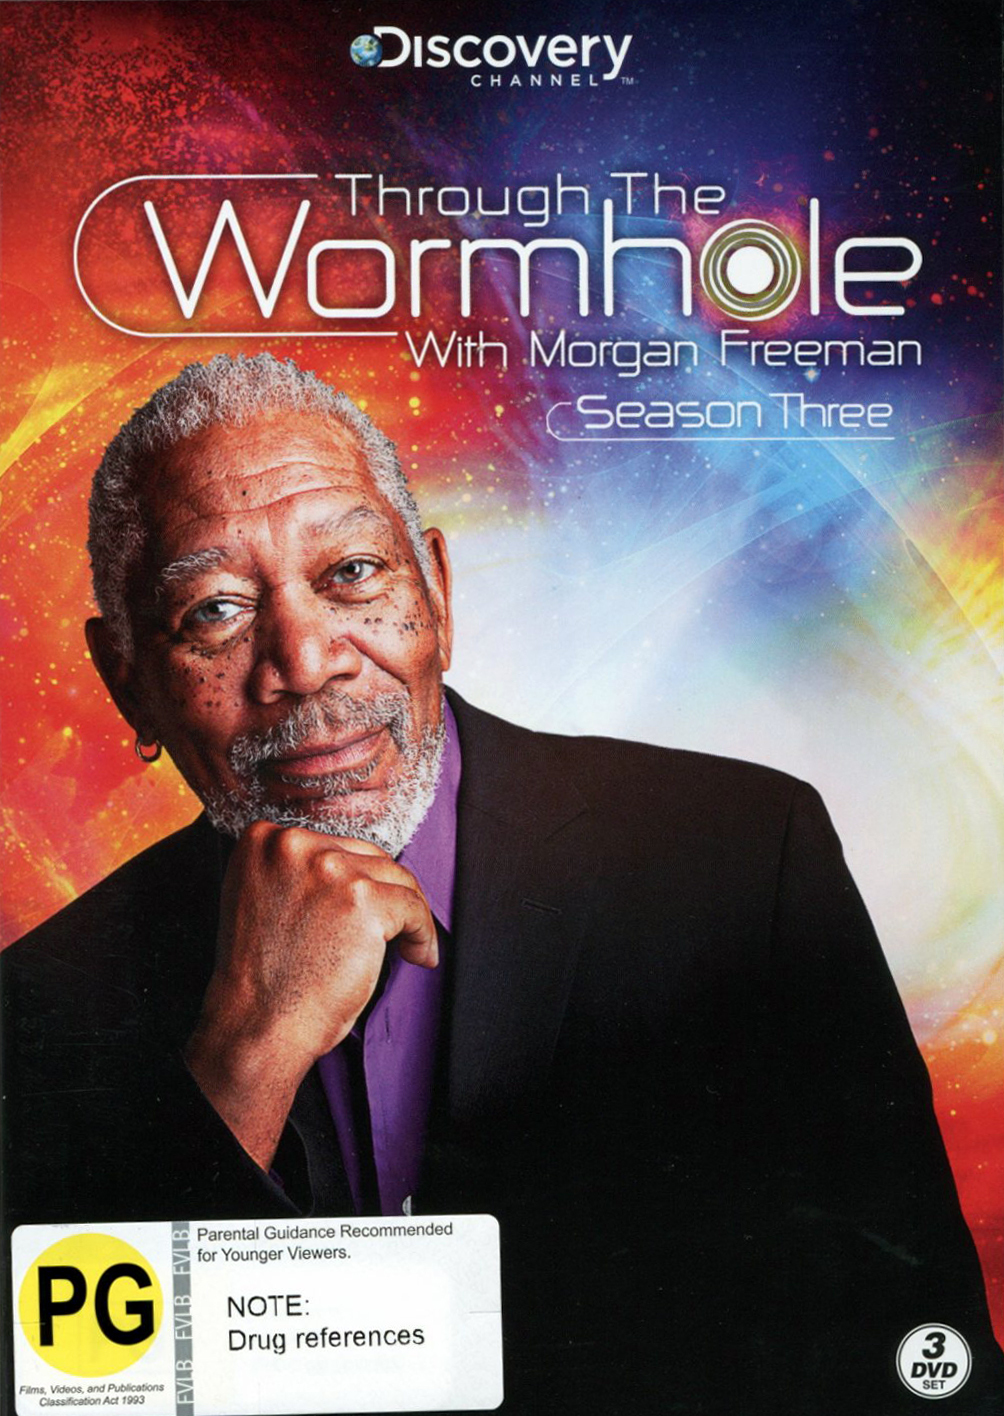 Through The Wormhole With Morgan Freeman Season 3 Images